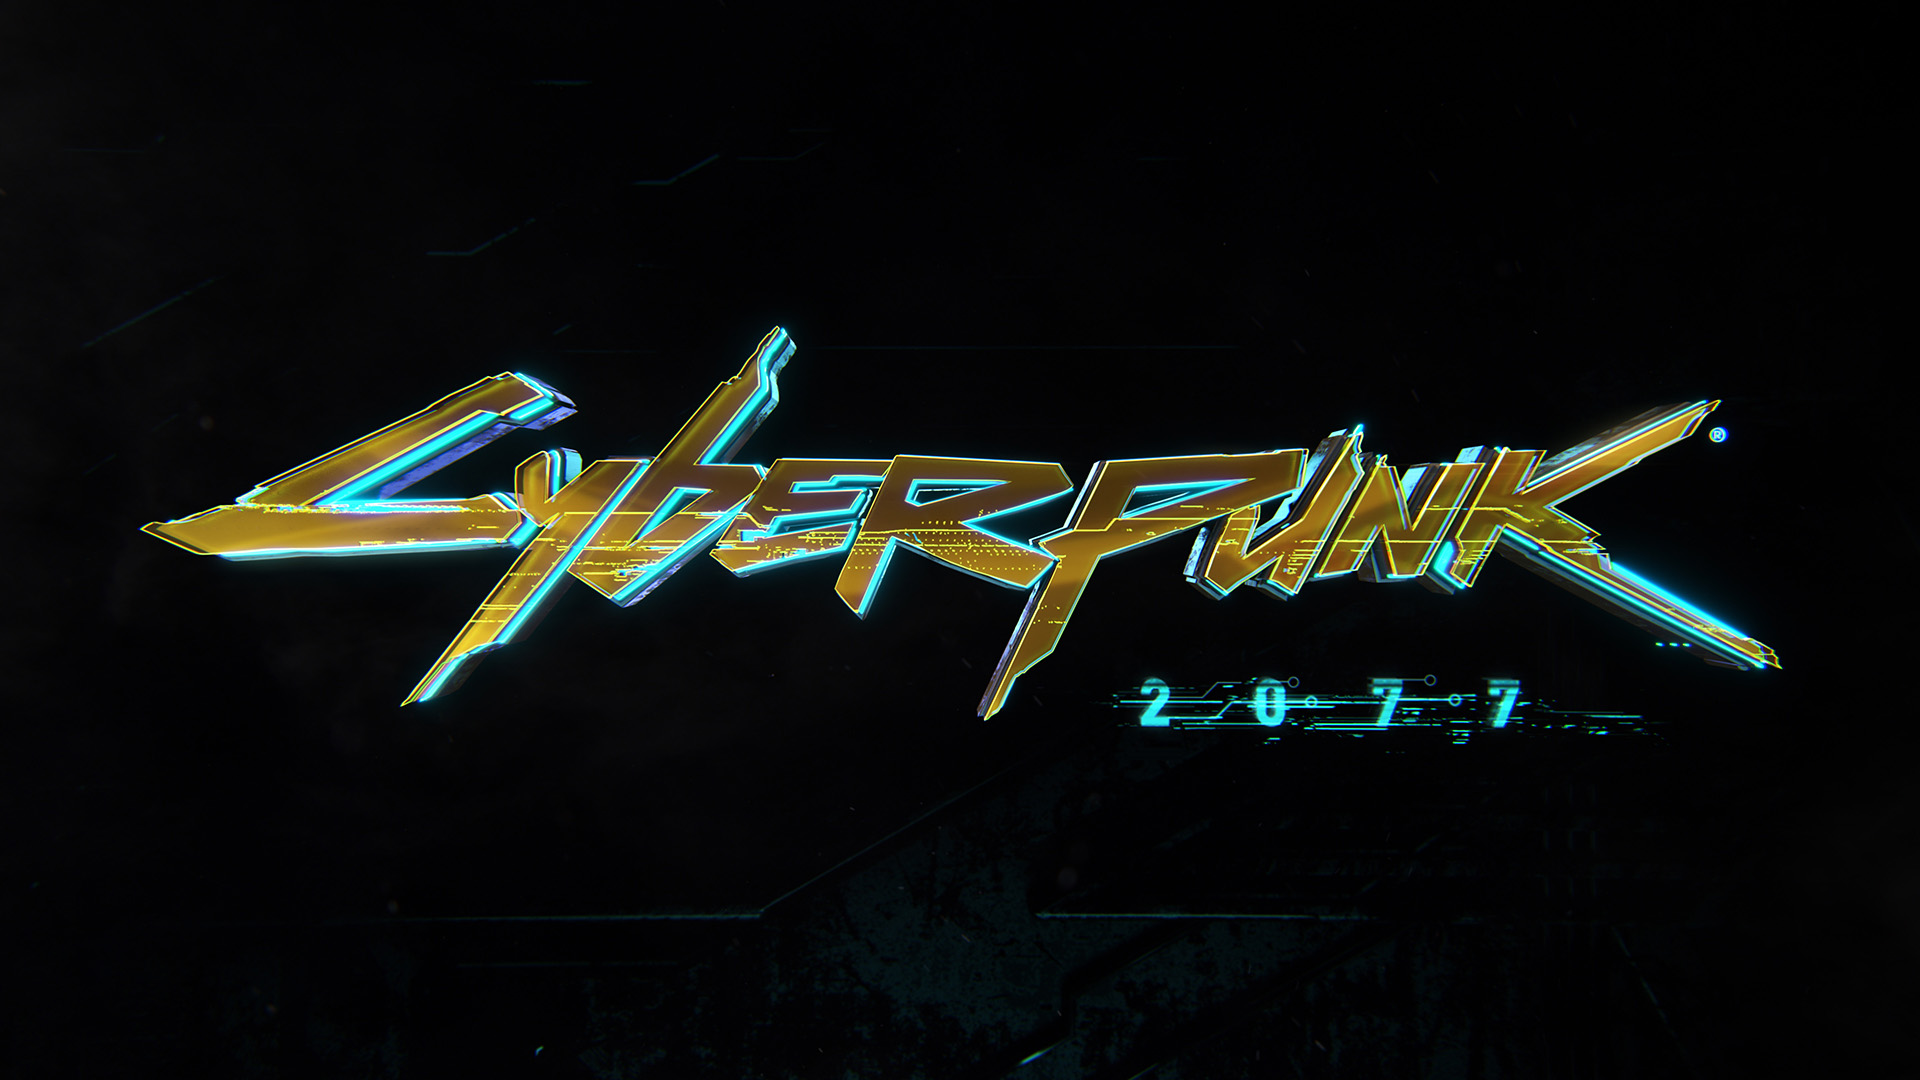 Cyberpunk 2077 Wallpapers